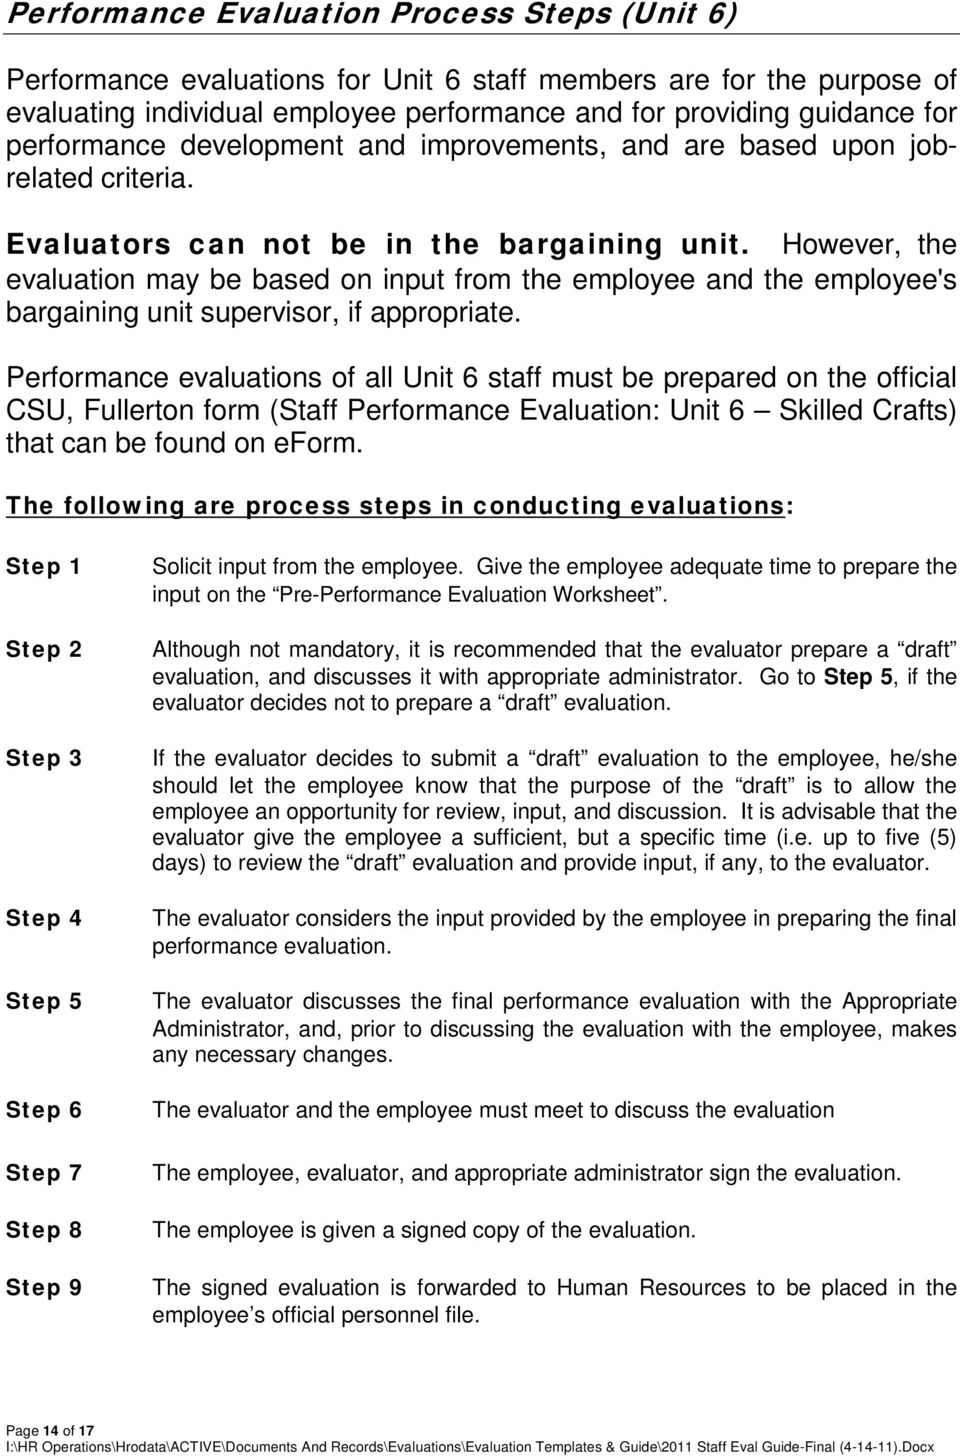 However, the evaluation may be based on input from the employee and the employee's bargaining unit supervisor, if appropriate.